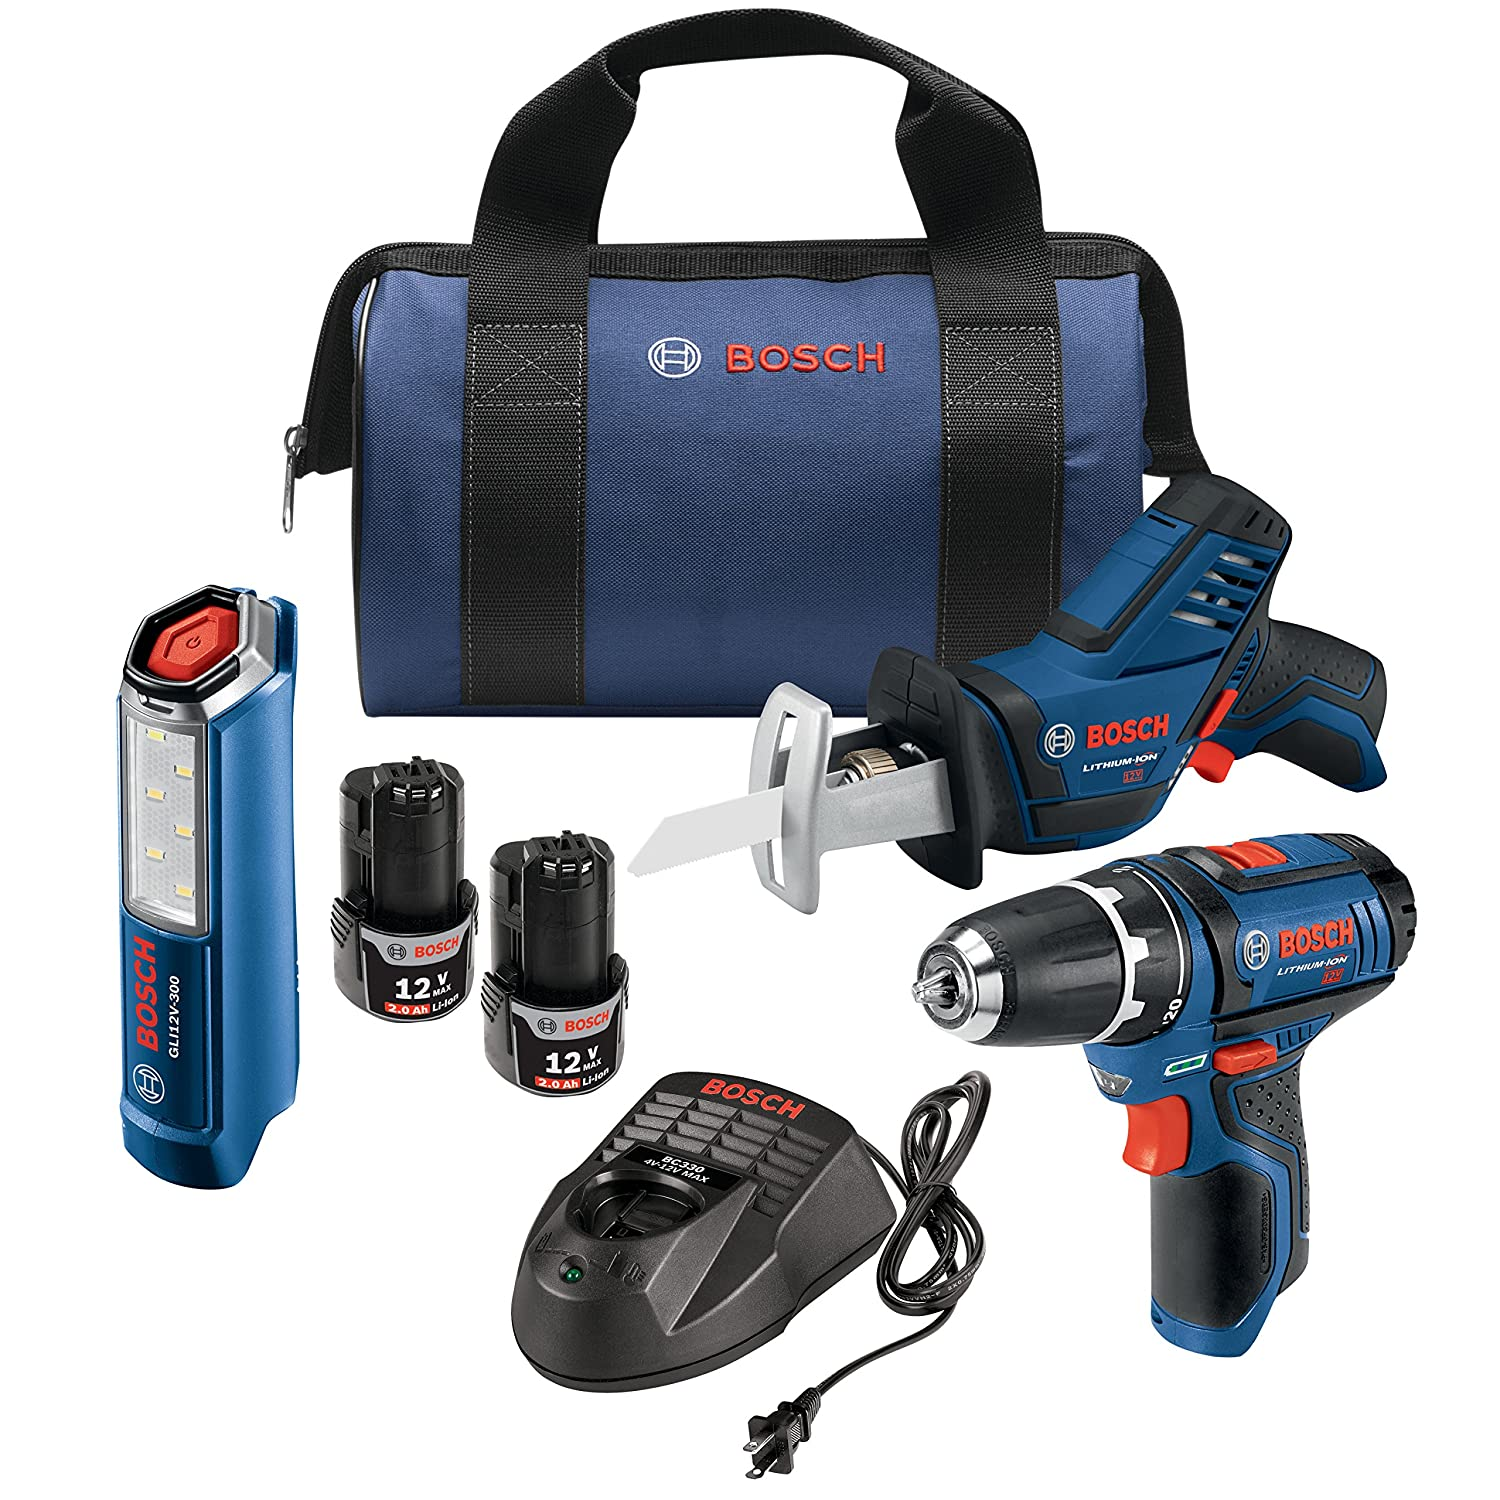 Amazon.com: Bosch 12V Max 3-Tool Combo Kit with 3/8 In. Drill/Driver,  Pocket Reciprocating Saw and LED Worklight GXL12V-310B22: Home Improvement